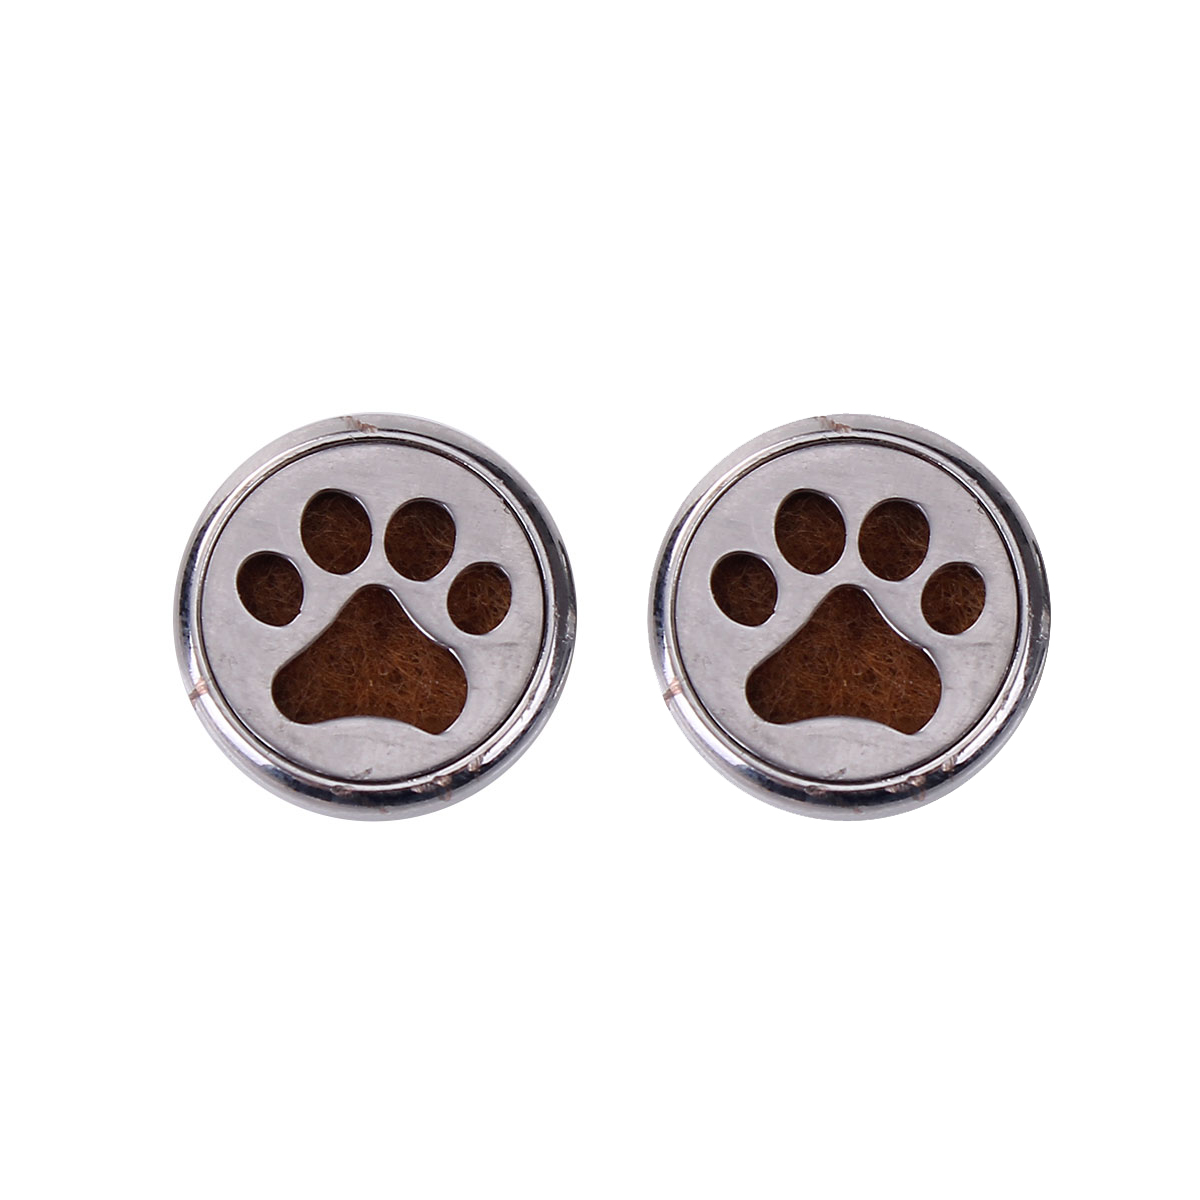 20mm Stainless Steel Snap Button Fit Snap Button Bracelets Round Silver Tone Felt Oil Diffuser Pads Claw, Knob Size: 5.5mm ...